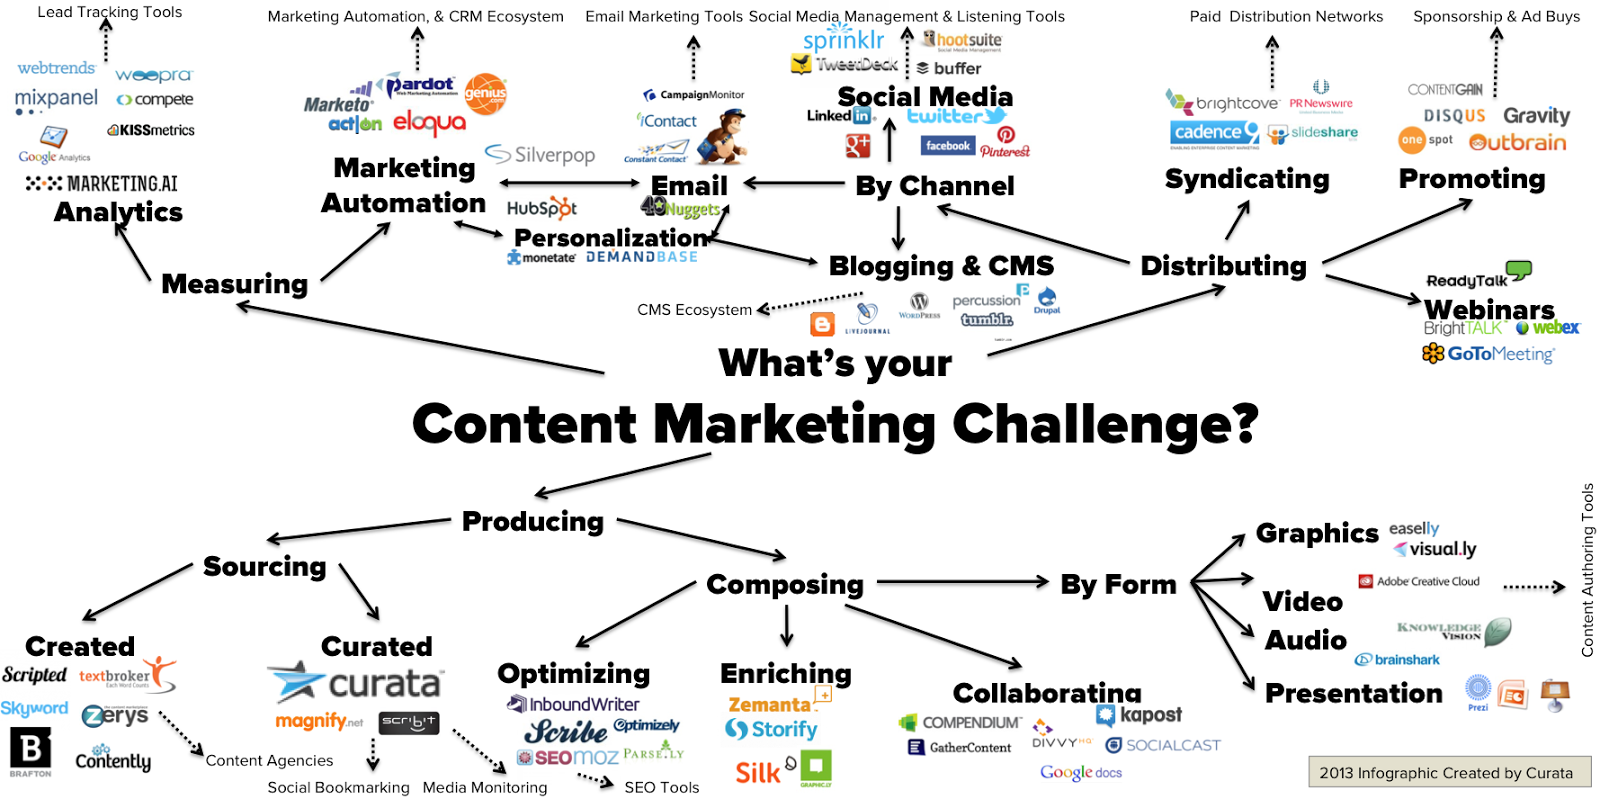 content-marketing-challenges.png